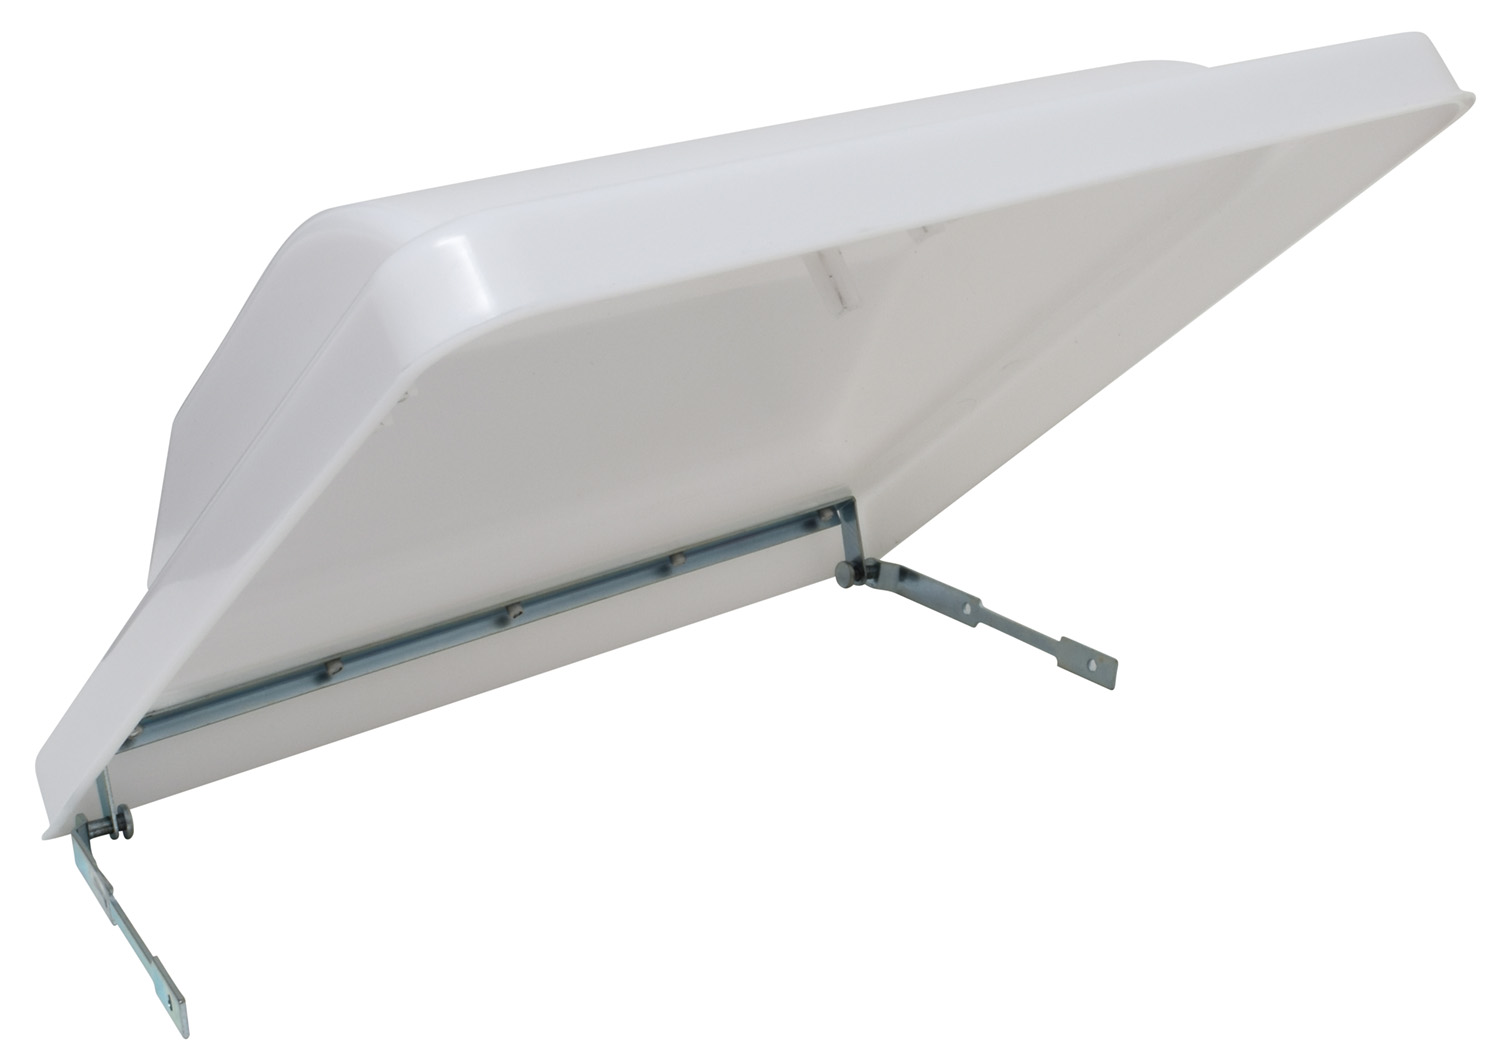 A10-3375PB Valterra Roof Vent Lid Replacement Universal Lid For